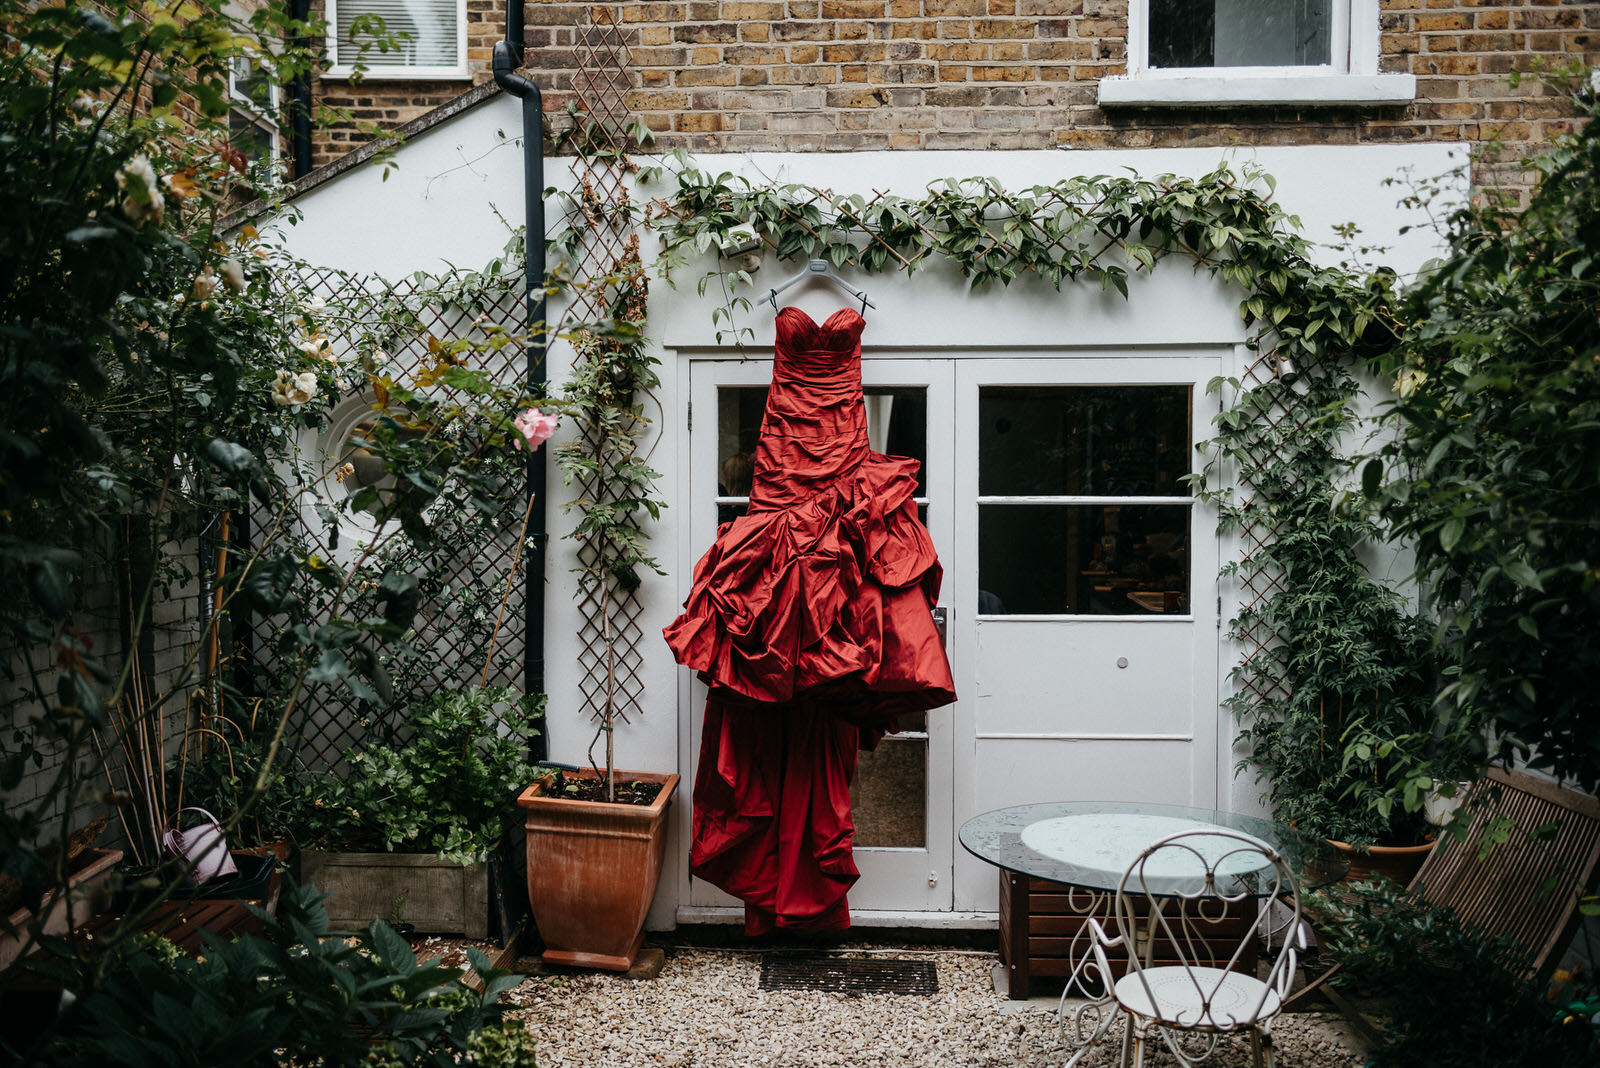 alternative and unique red taffeta wedding dress hanging on wall of London AirBNB